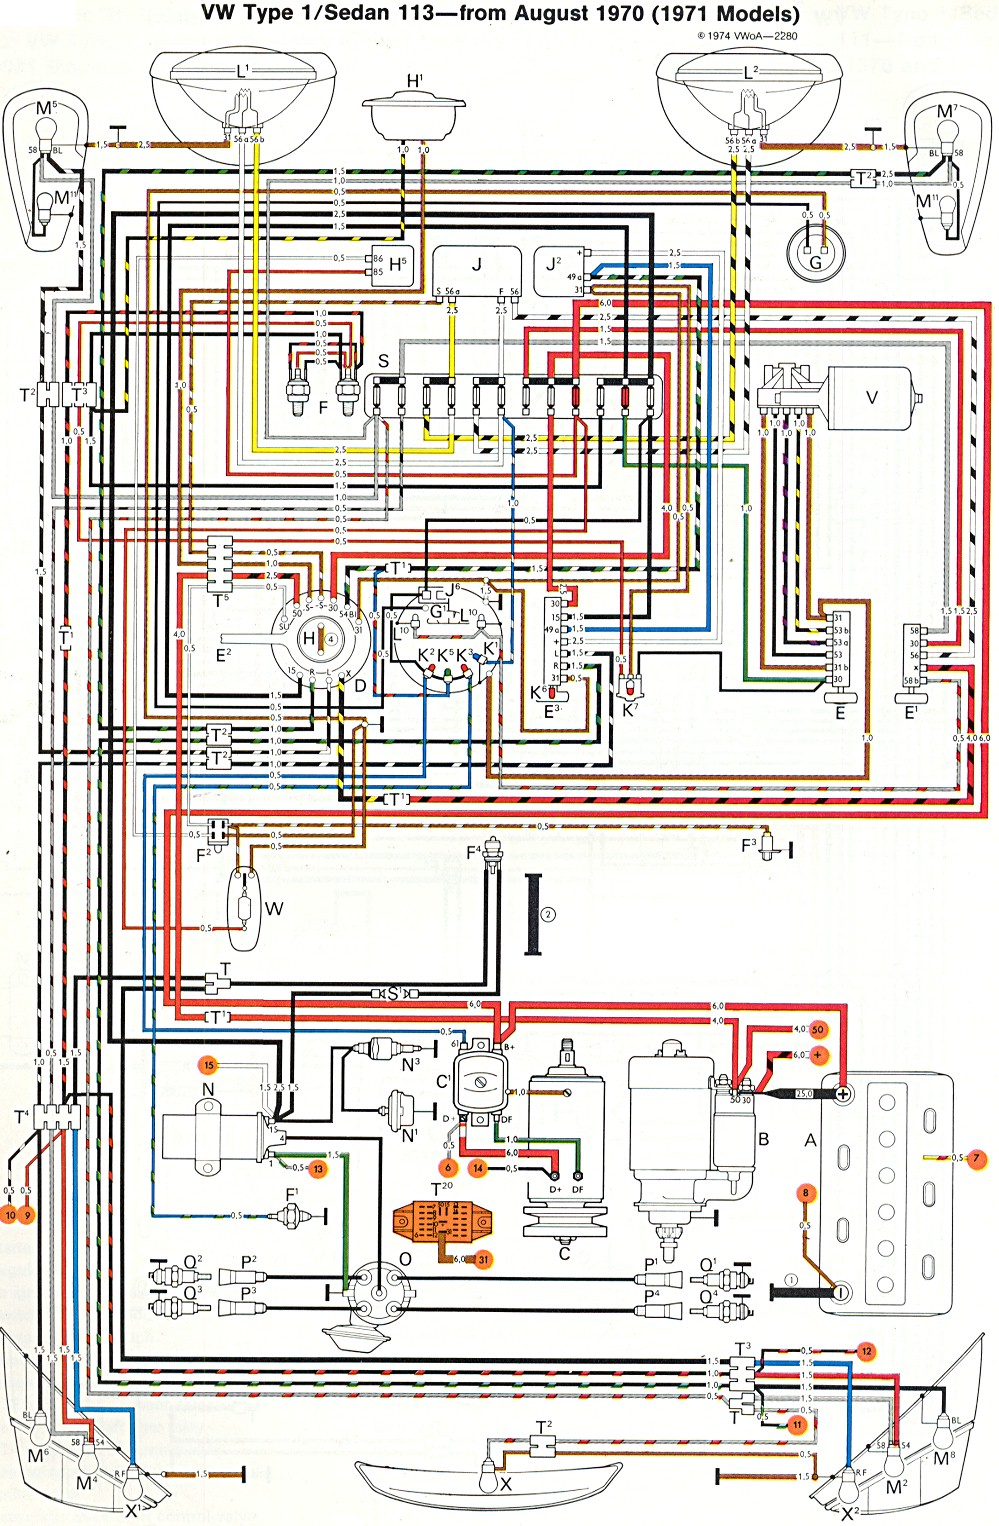 Volkswagen 2002 Beetle Wiring Diagram List Of Schematic Circuit 1974 VW  Beetle Wiring Vw Super Beetle Wiring